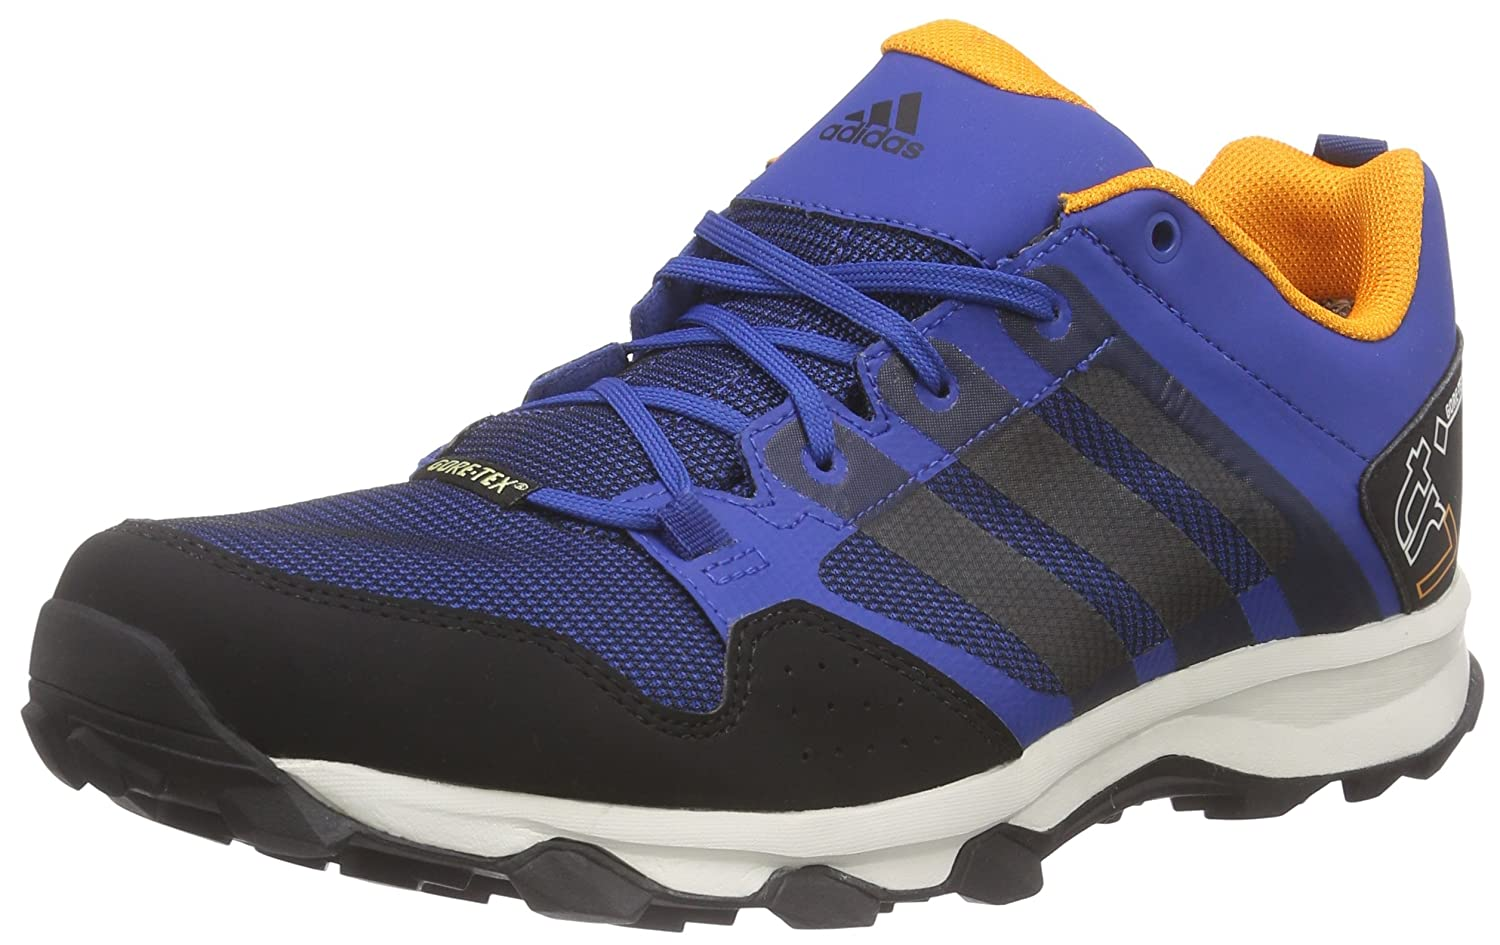 Adidas Kanadia 7 TR GTX Running Shoes - SS16